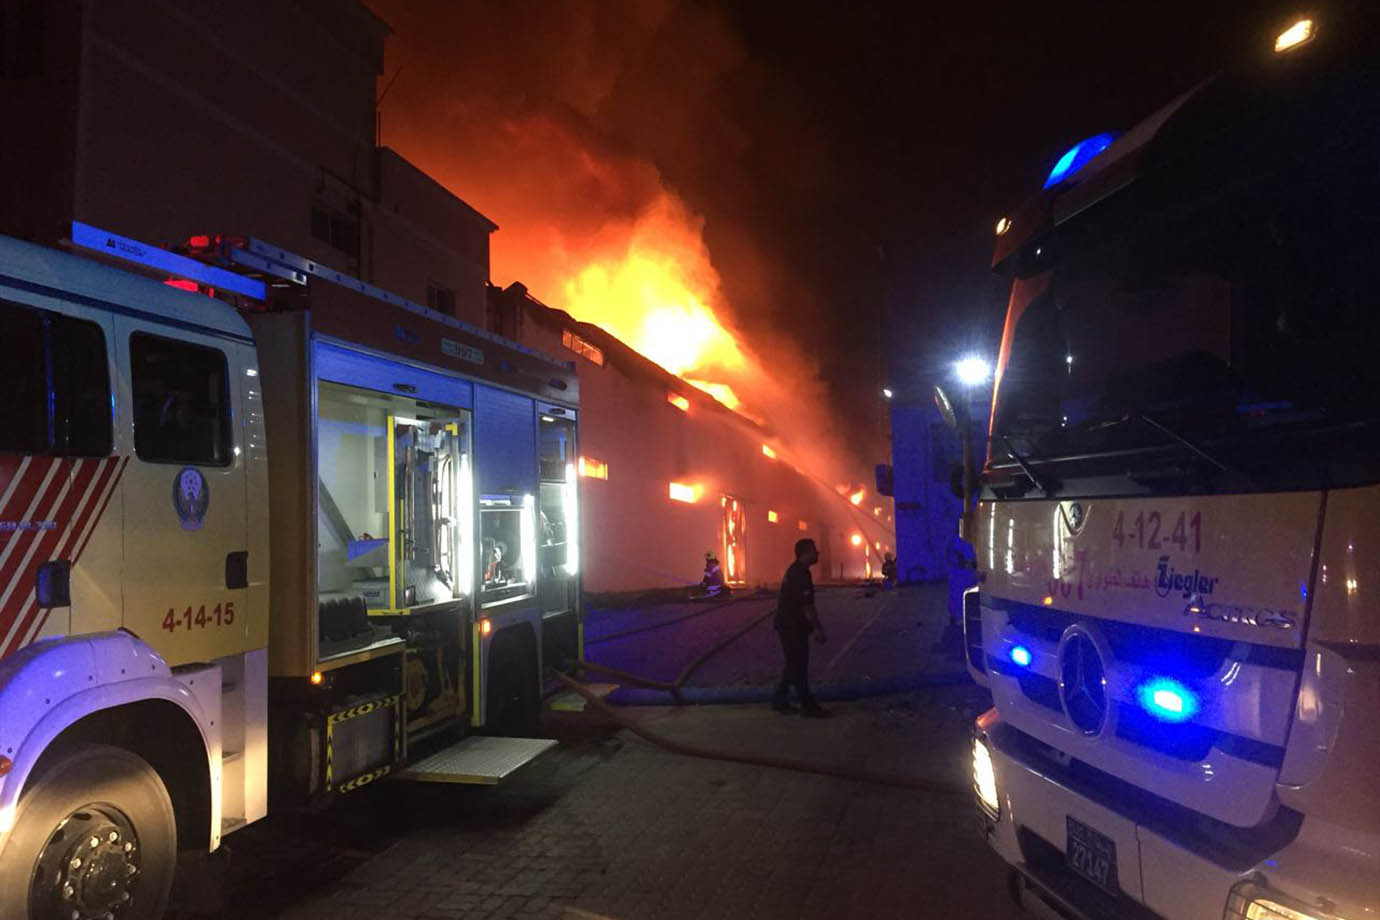 Firefighters tackle the blaze in Ajman.